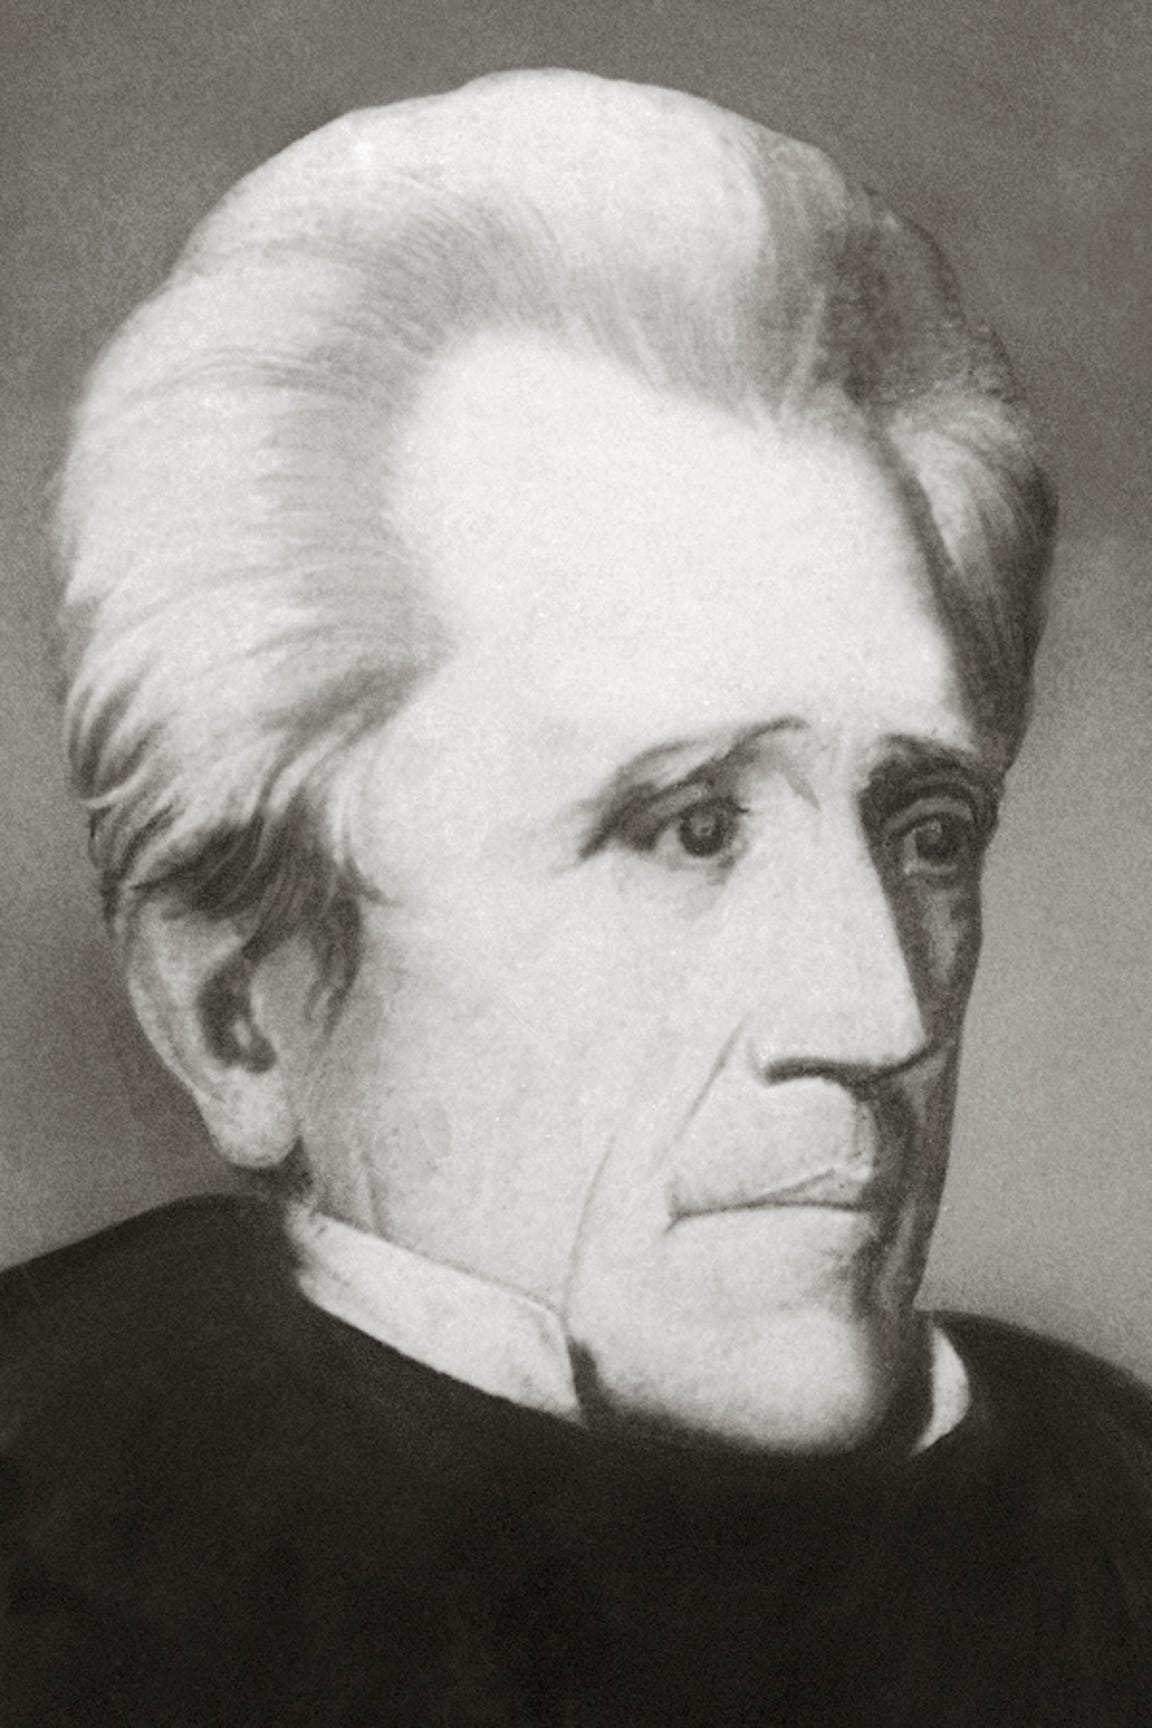 Future president Andrew Jackson (pictured), planter and judgeJohnOverton and Revolutionary War officer James Winchester founded Memphis.